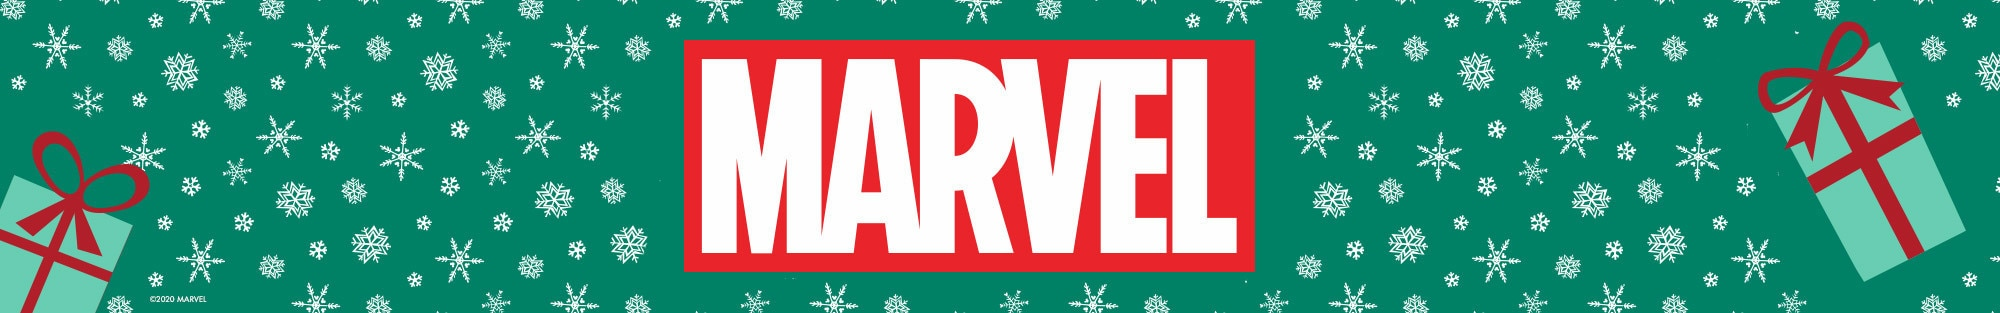 Top_ShopDisney_Marvel_Ago20_Ext